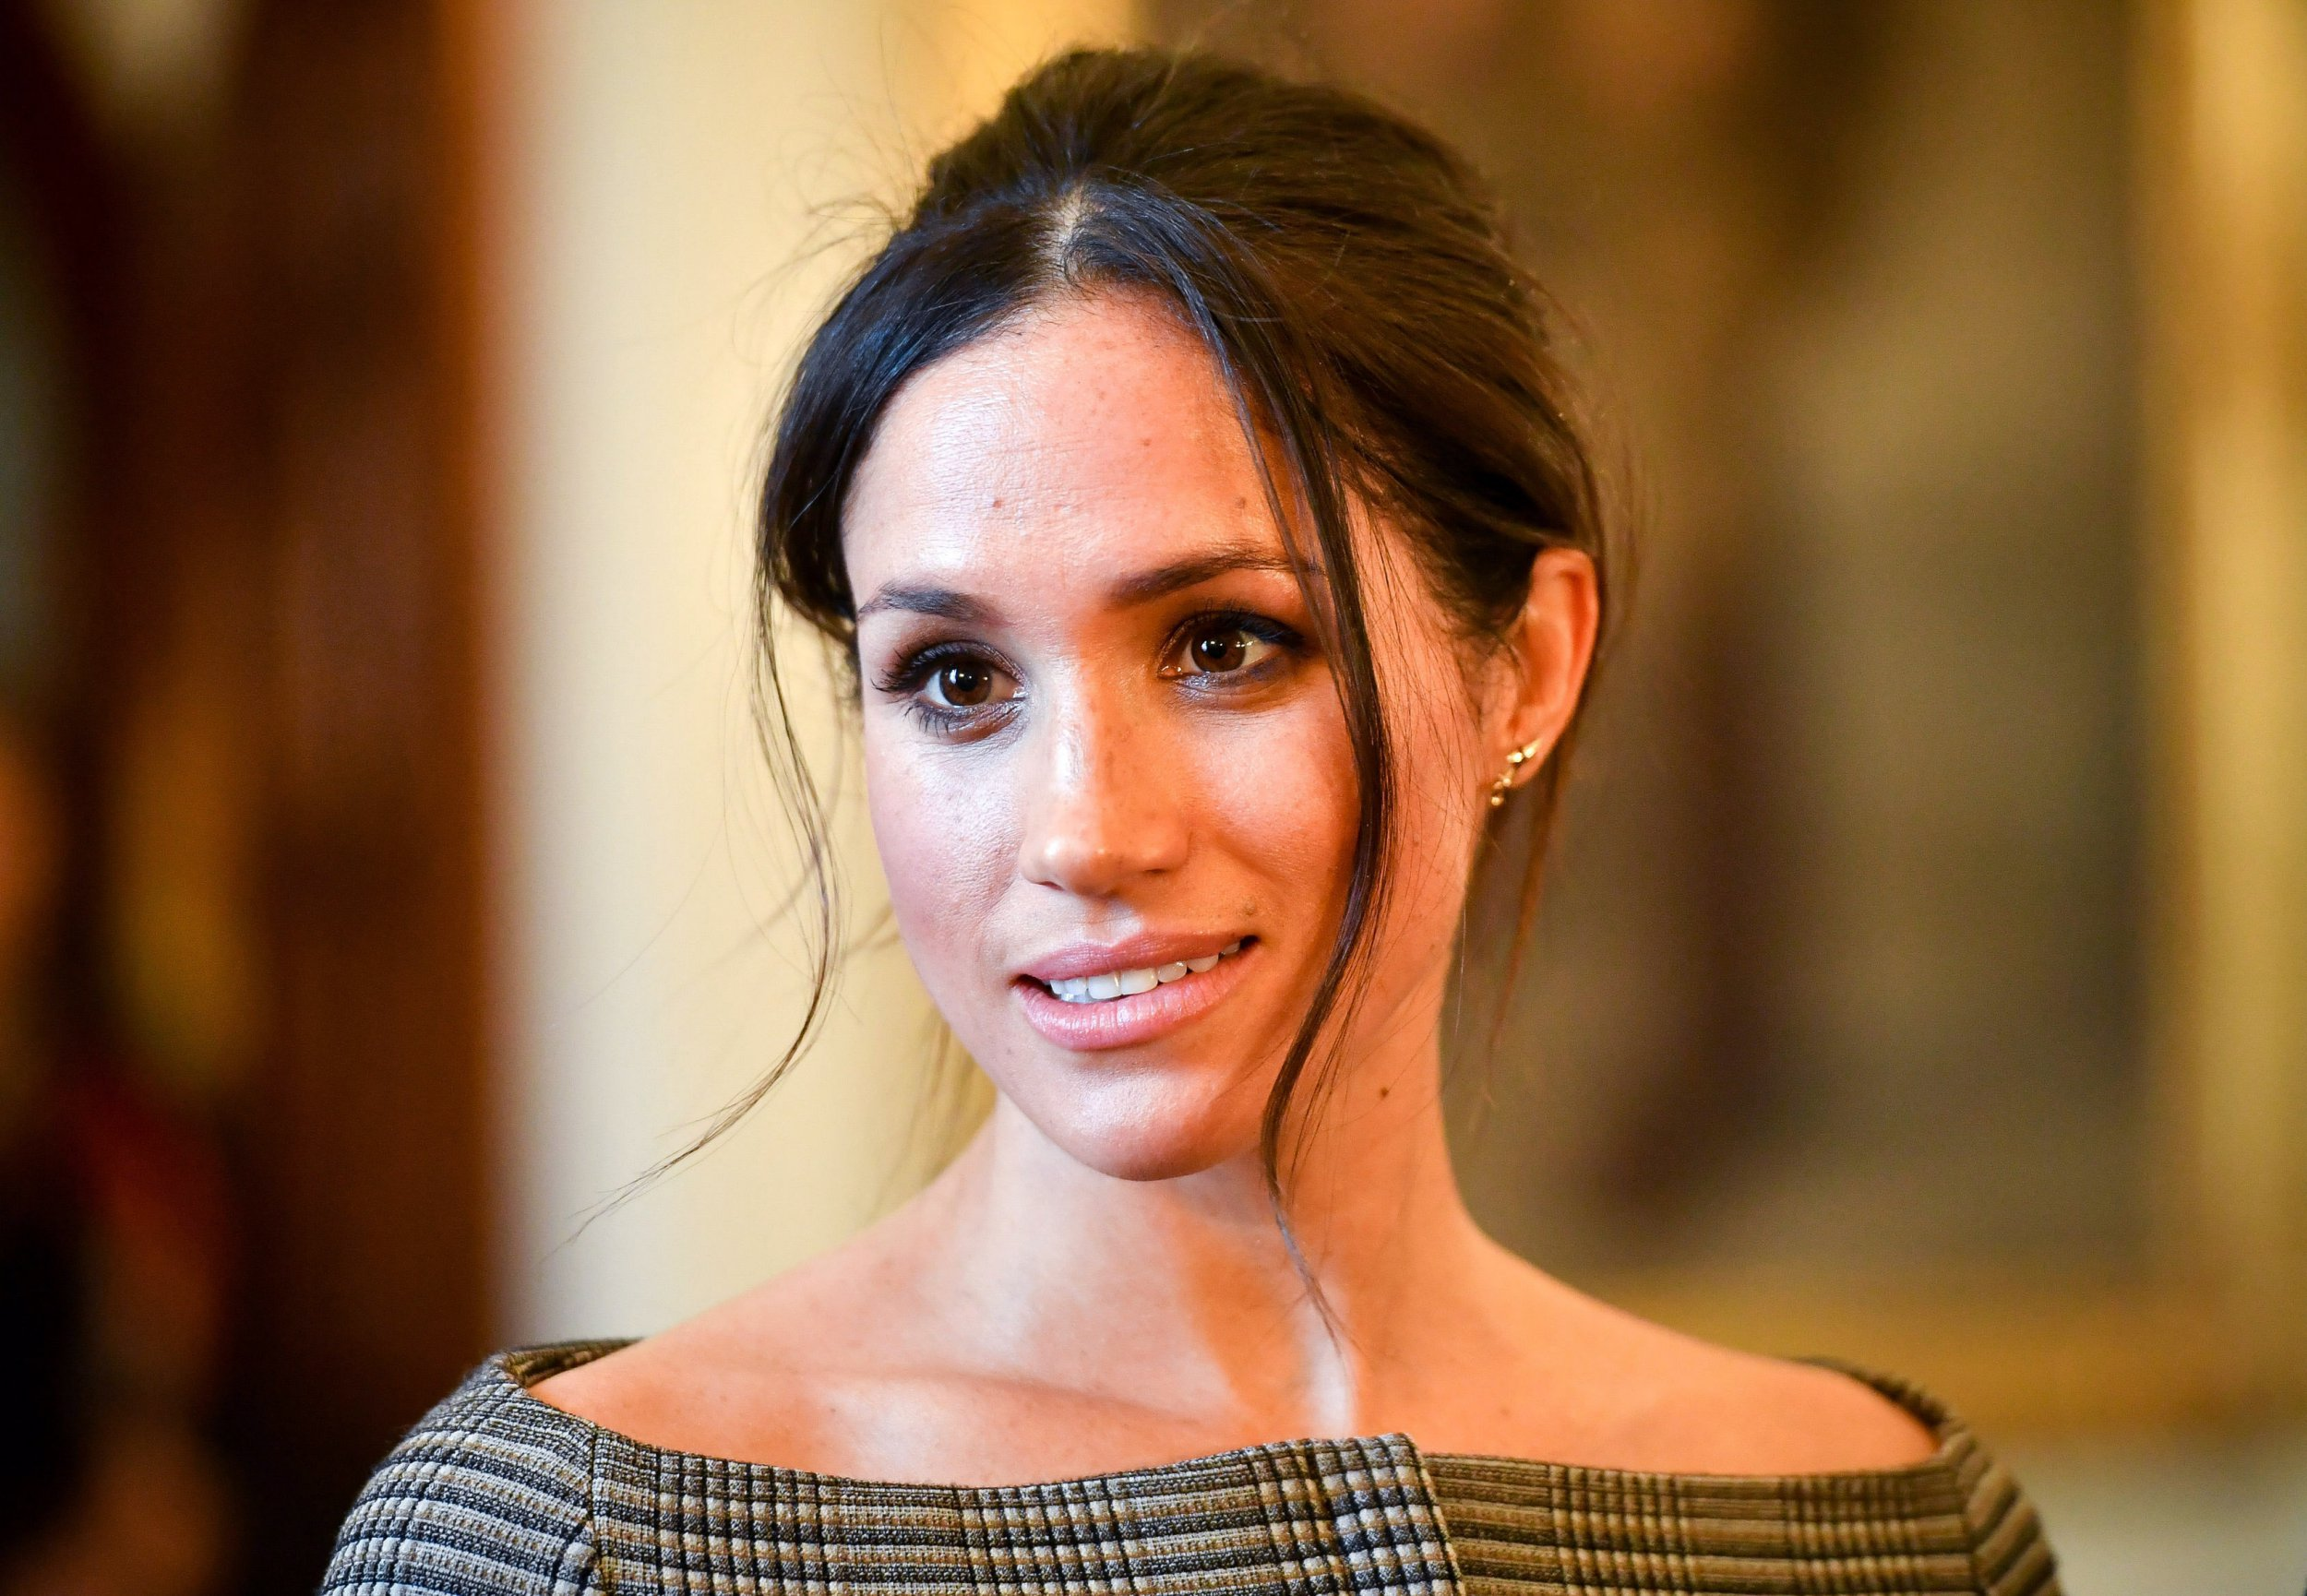 CARDIFF, WALES - JANUARY 18: Meghan Markle chats with people inside the Drawing Room during a visit to Cardiff Castle on January 18, 2018 in Cardiff, Wales. (Photo by Ben Birchall - WPA Pool / Getty Images)